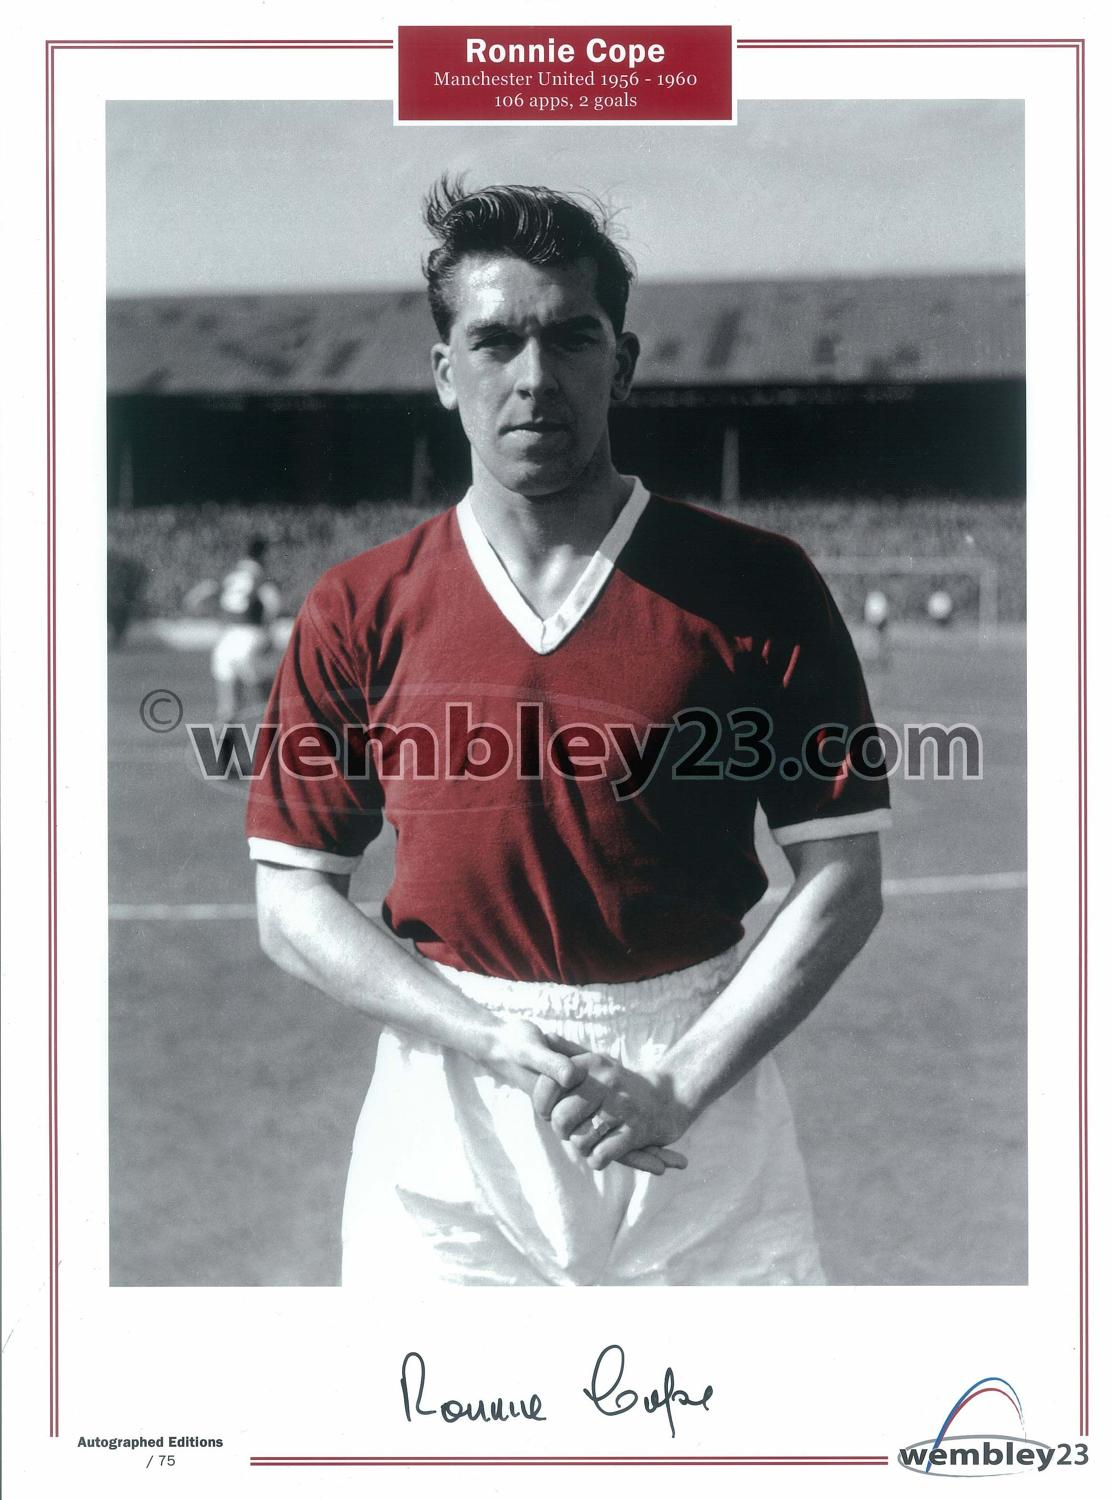 Ron Cope,Manchester United